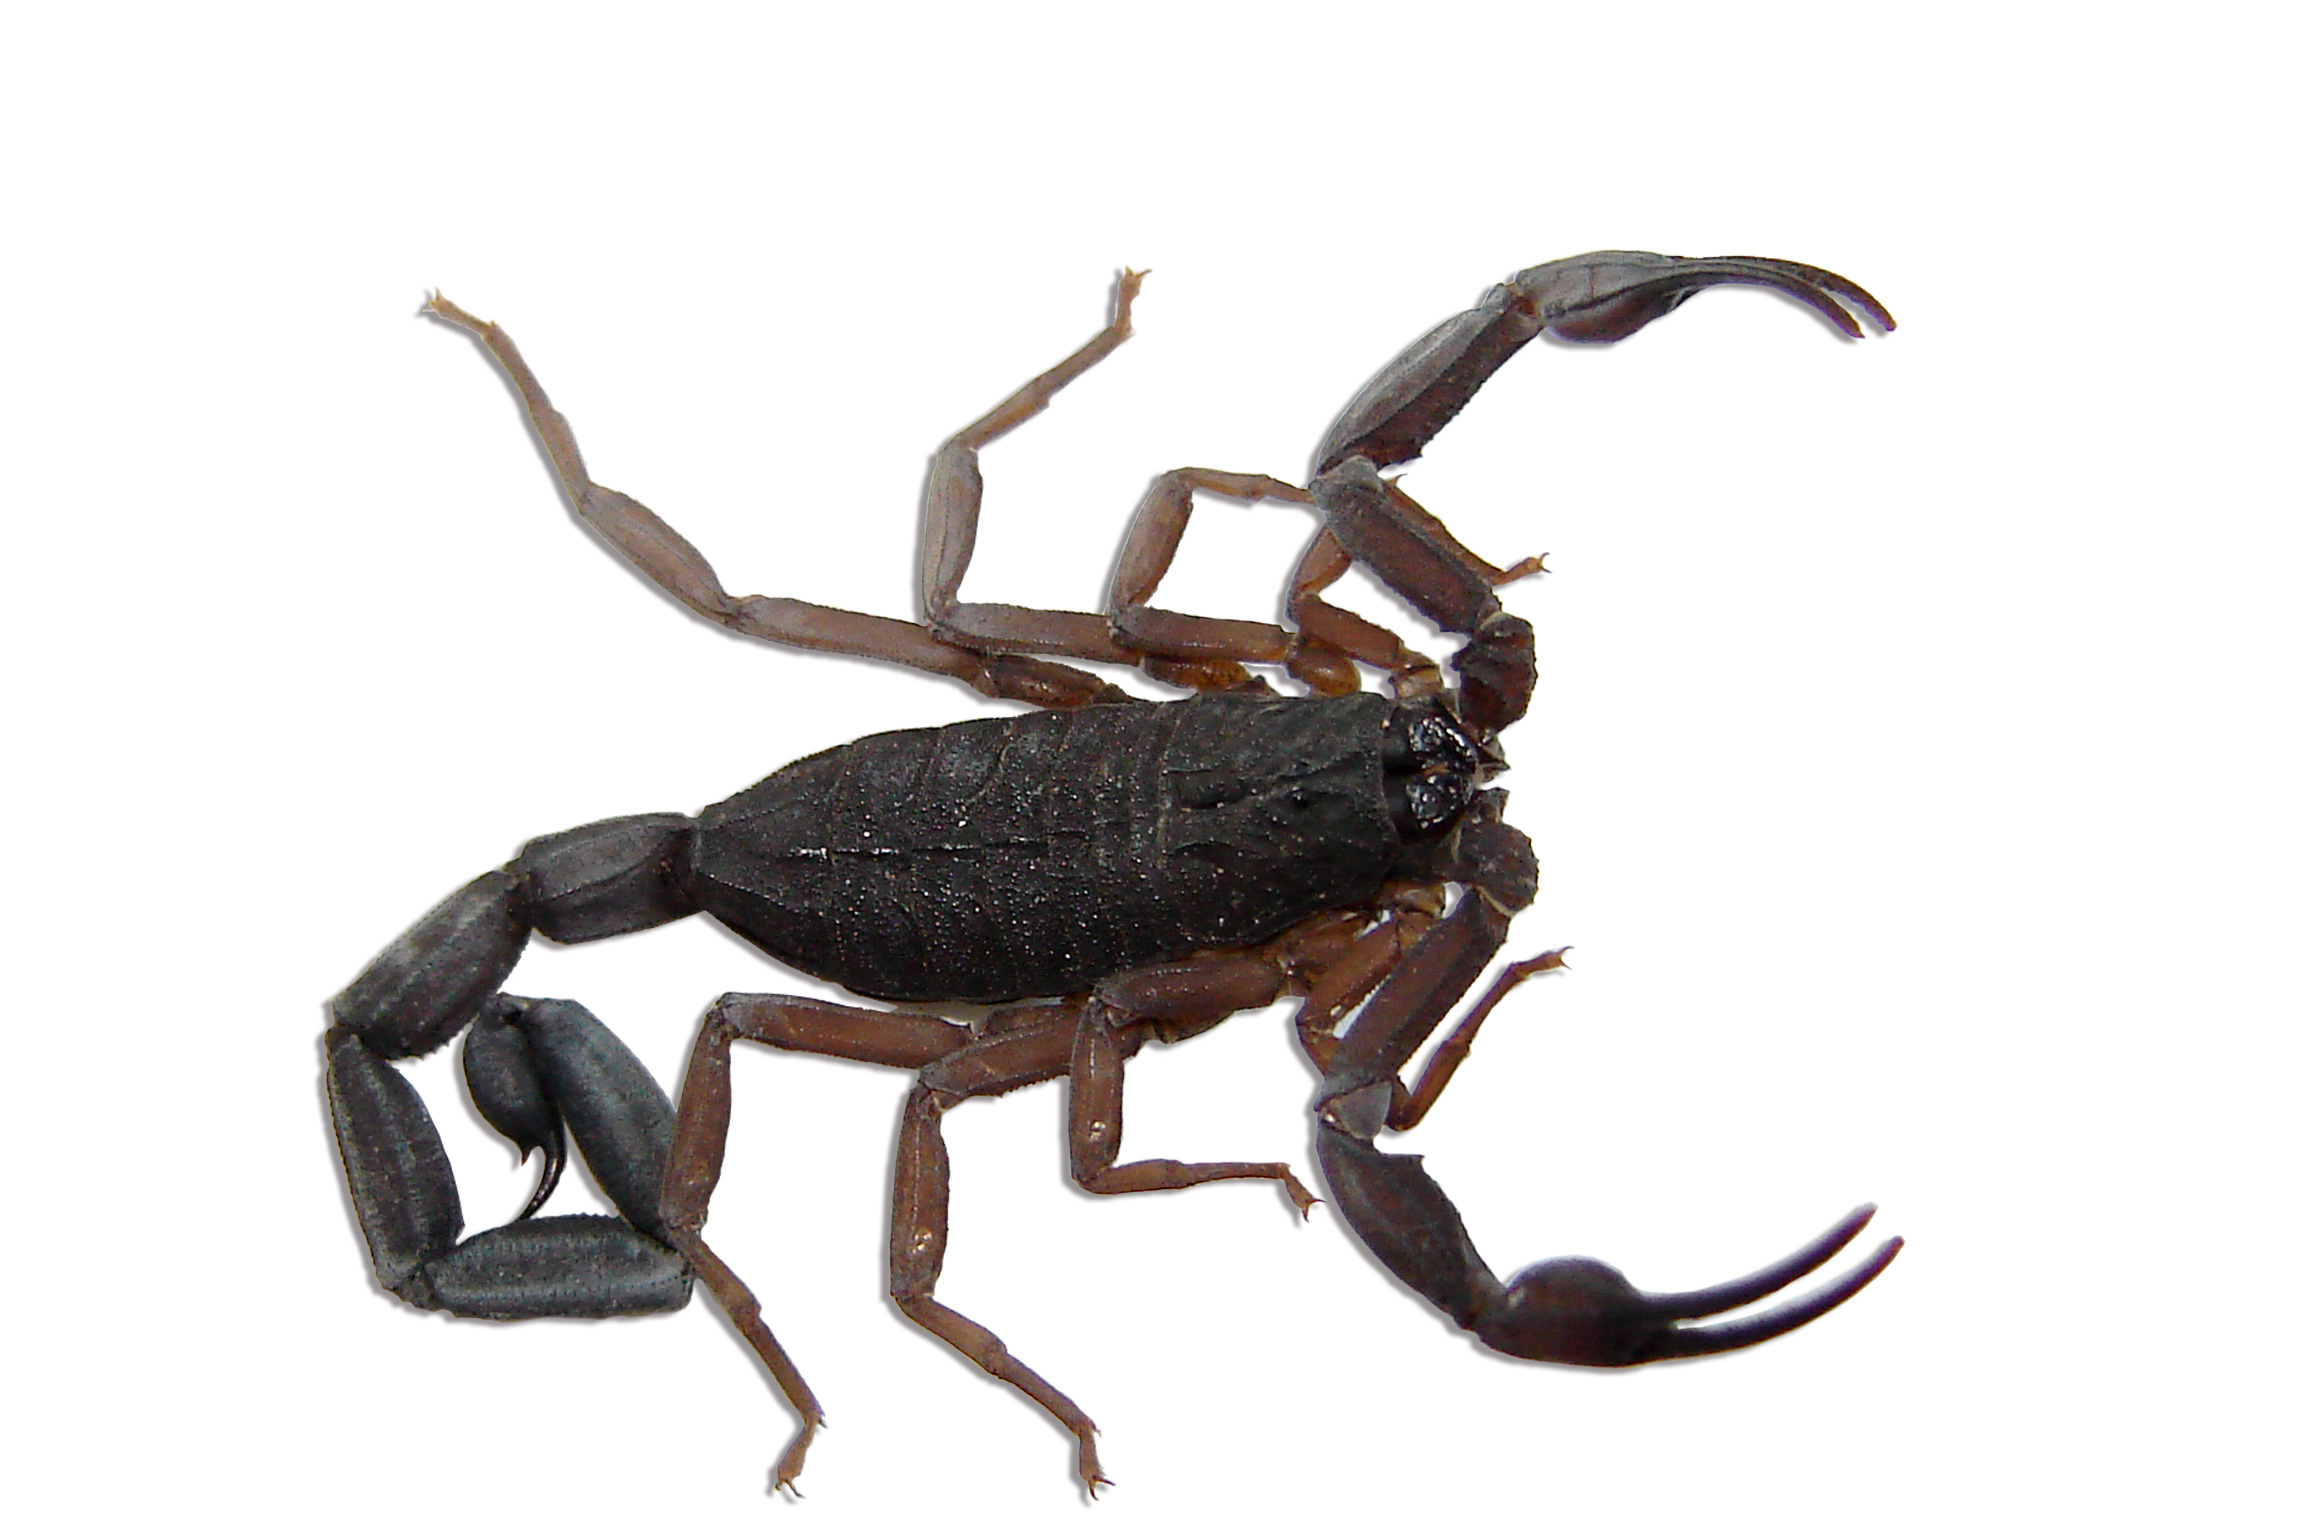 Scorpion Control Products and Supplies